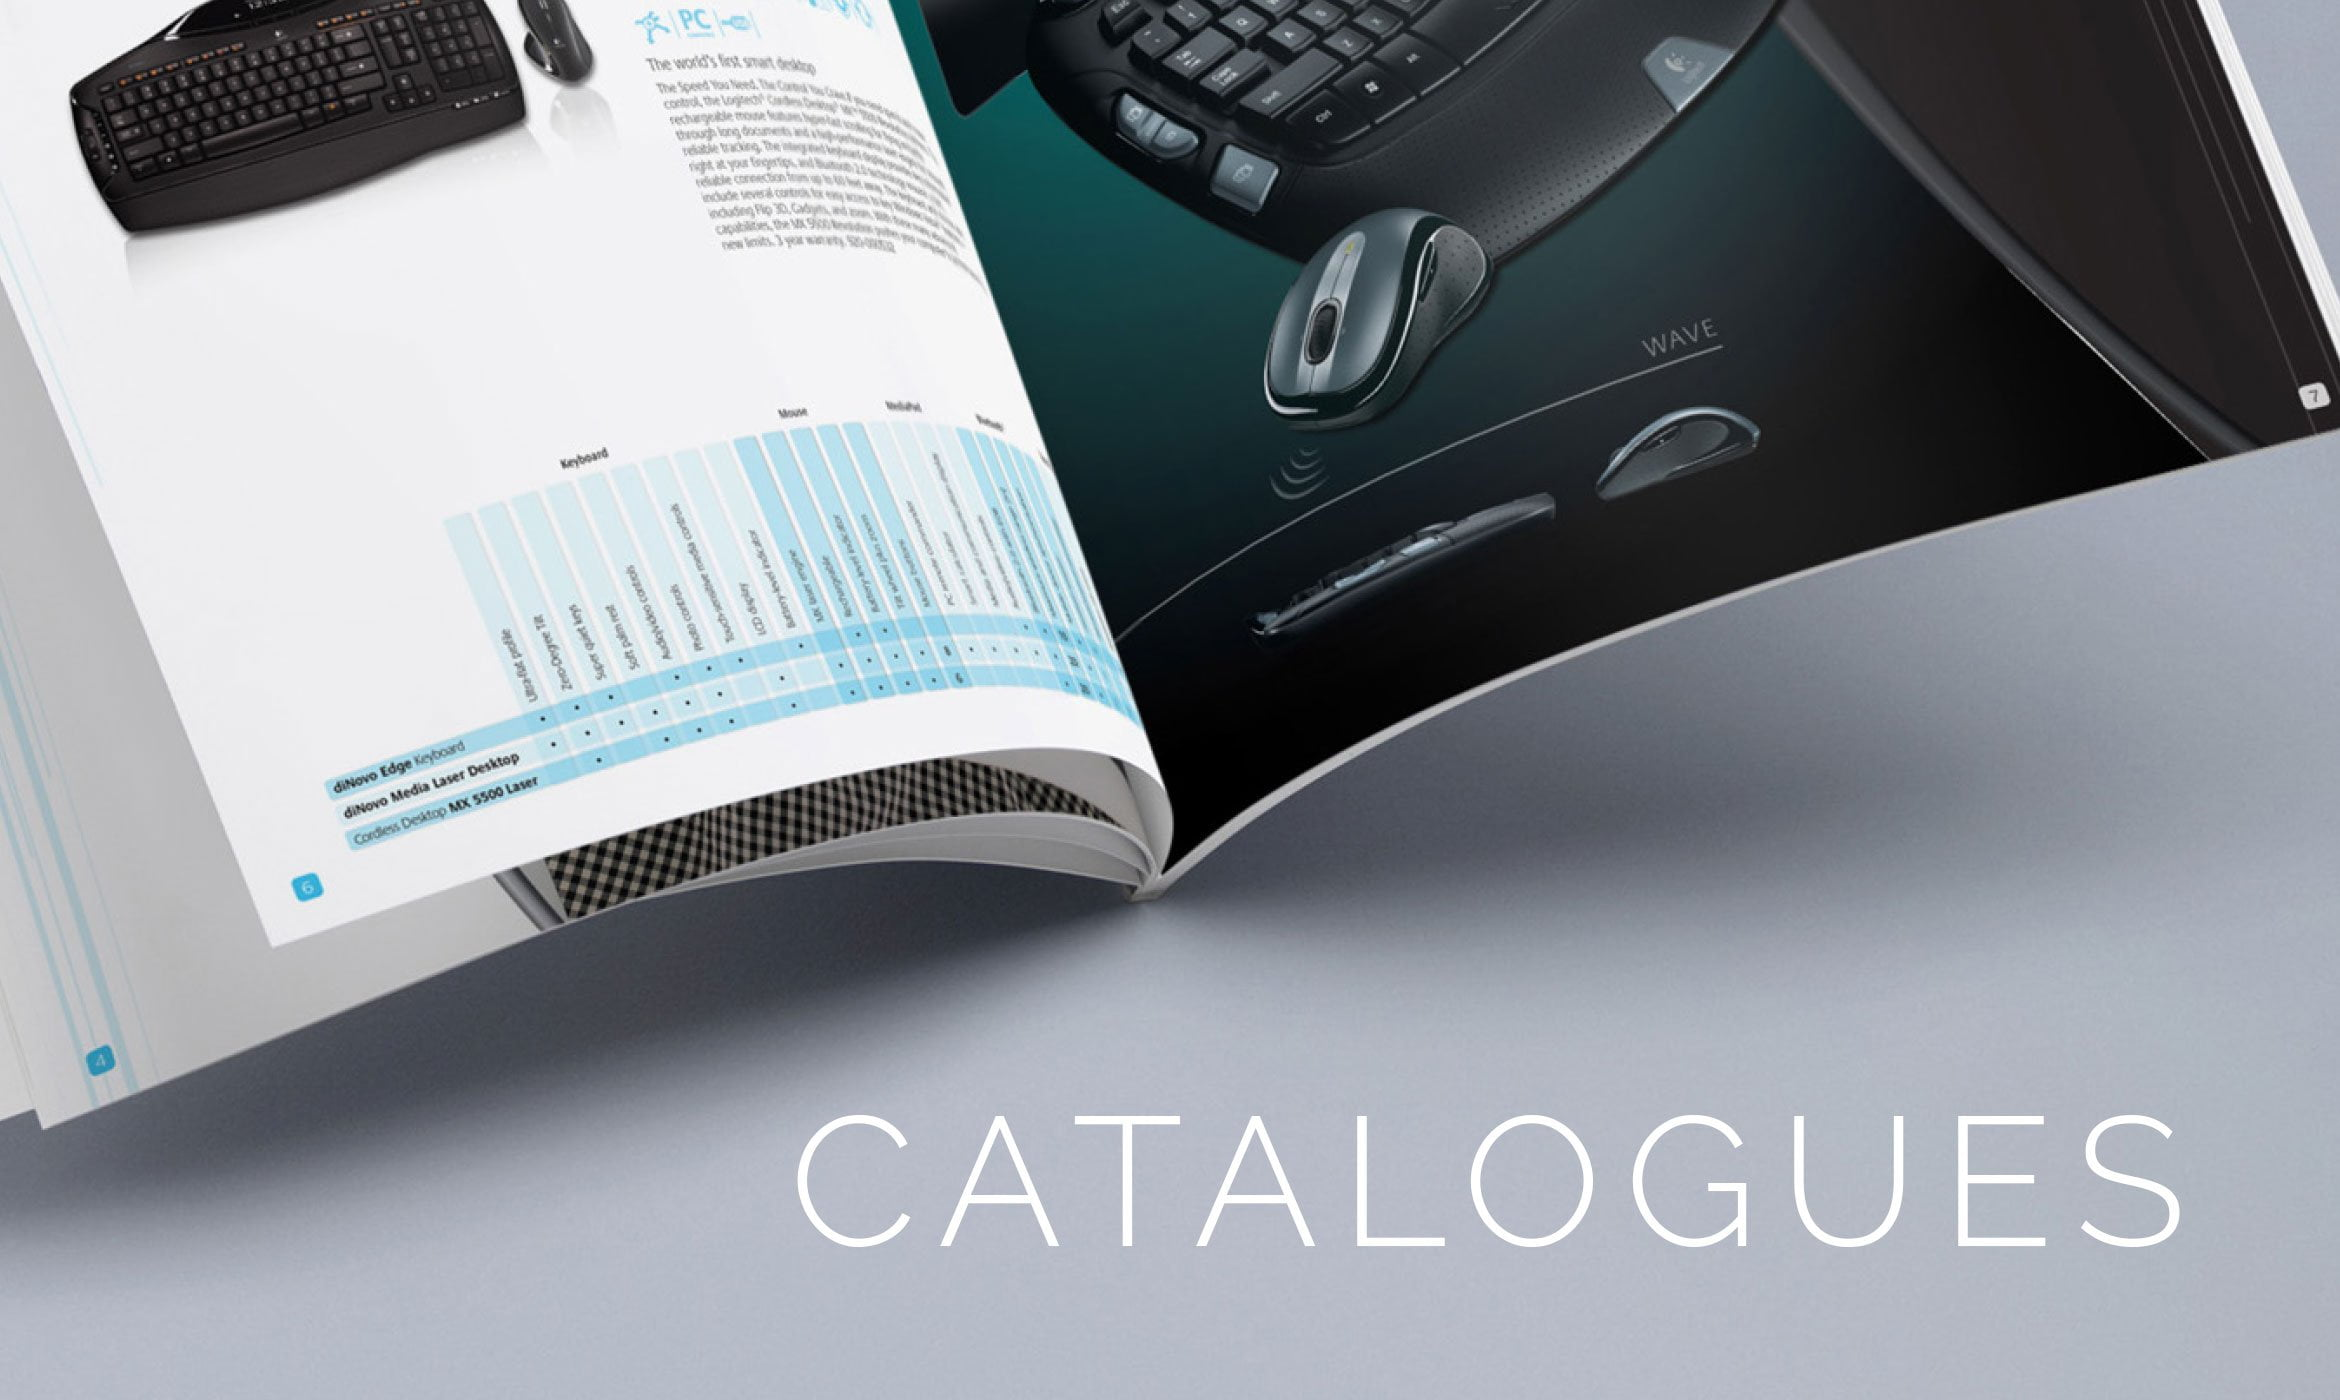 Catalogues 1 - Home Graphic Design